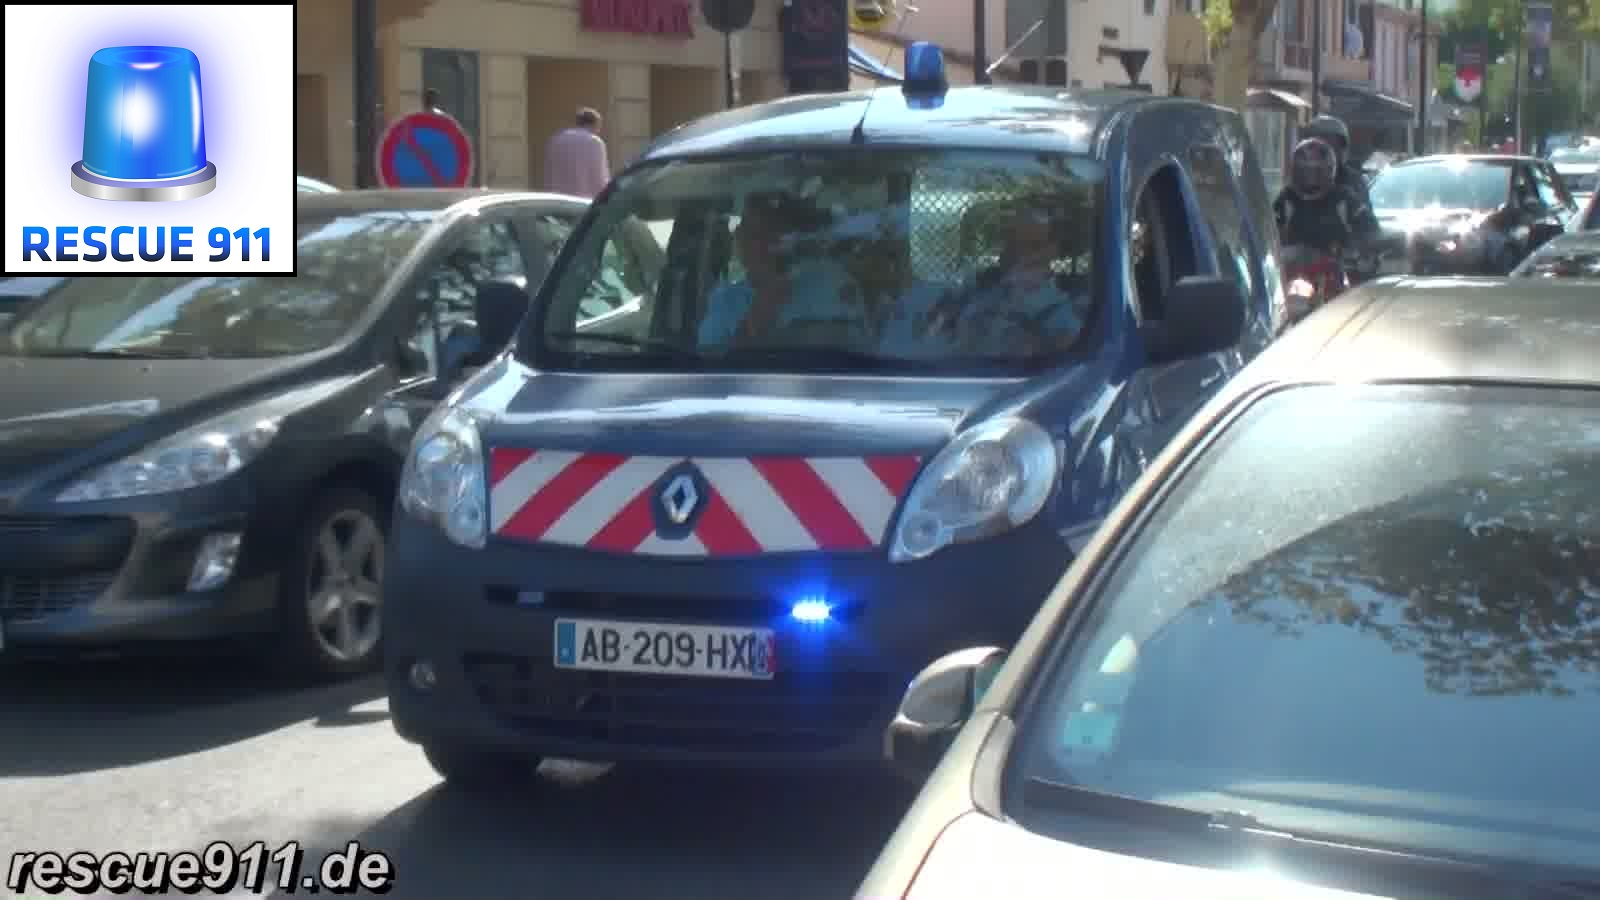 Gendarmerie Nationale Saint-Tropez (stream)